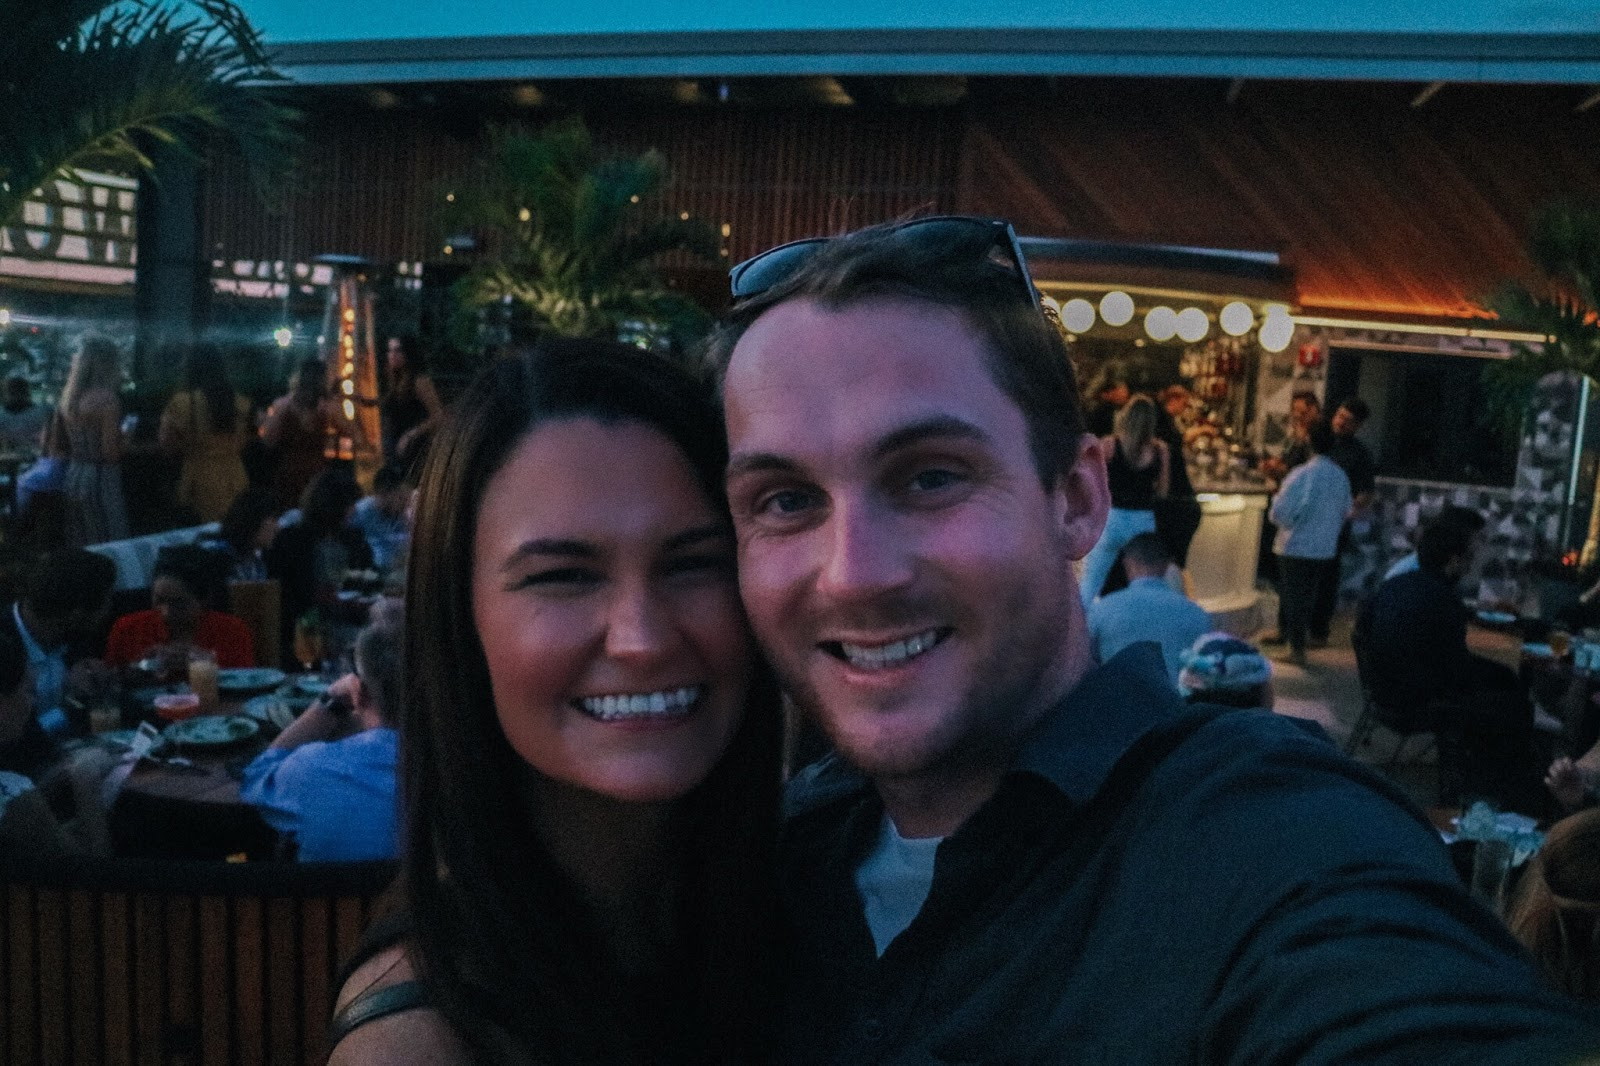 Tampa Bay blogger and her husband enjoying M.Bird, the new rooftop bar on top of Armature Works in Tampa, Florida